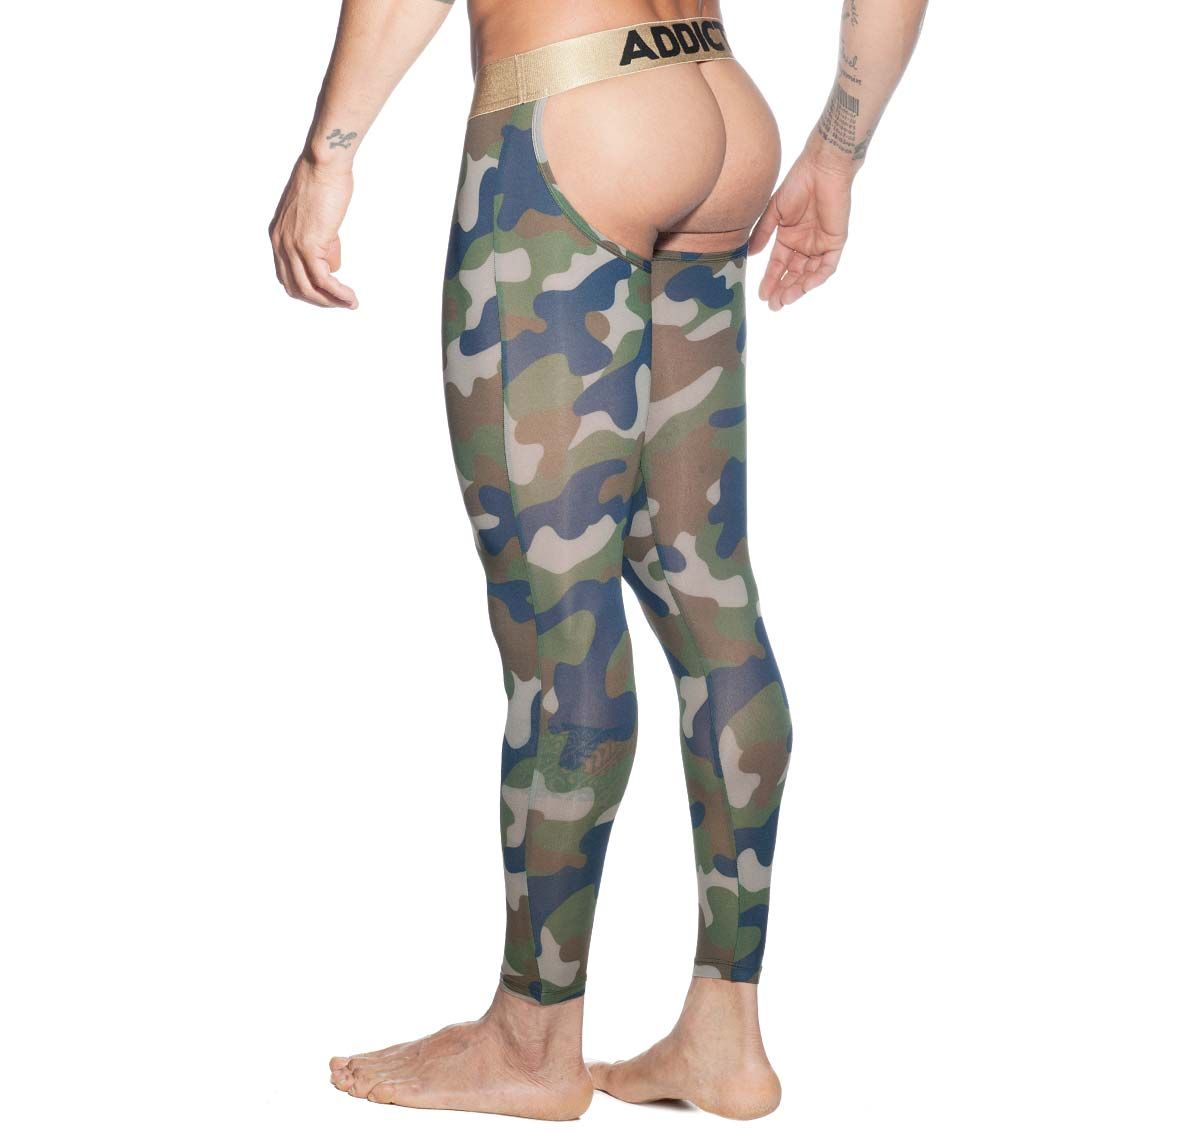 Addicted long underpants BOTTOMLESS CAMO LONG JOHN AD695, camouflage